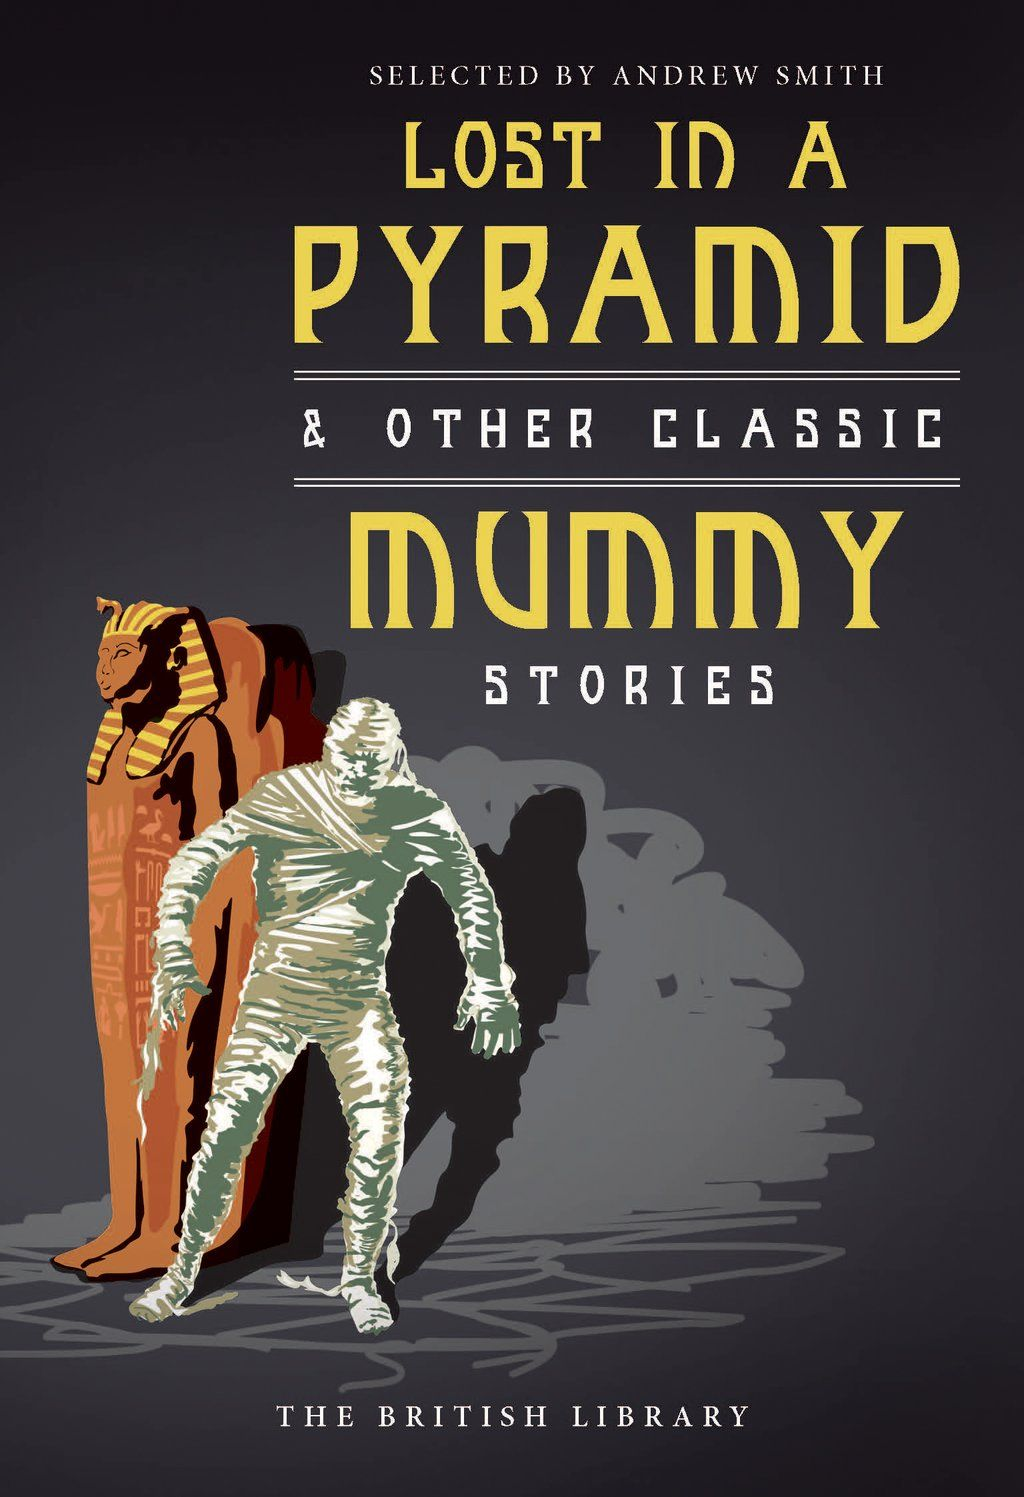 "Brit Lib Publishing on Twitter: ""The Mummy Returns...  Classic mummy stories from Arthur Conan Doyle and others, released this autumn. https://t.co/WXzxxHsg3m"""